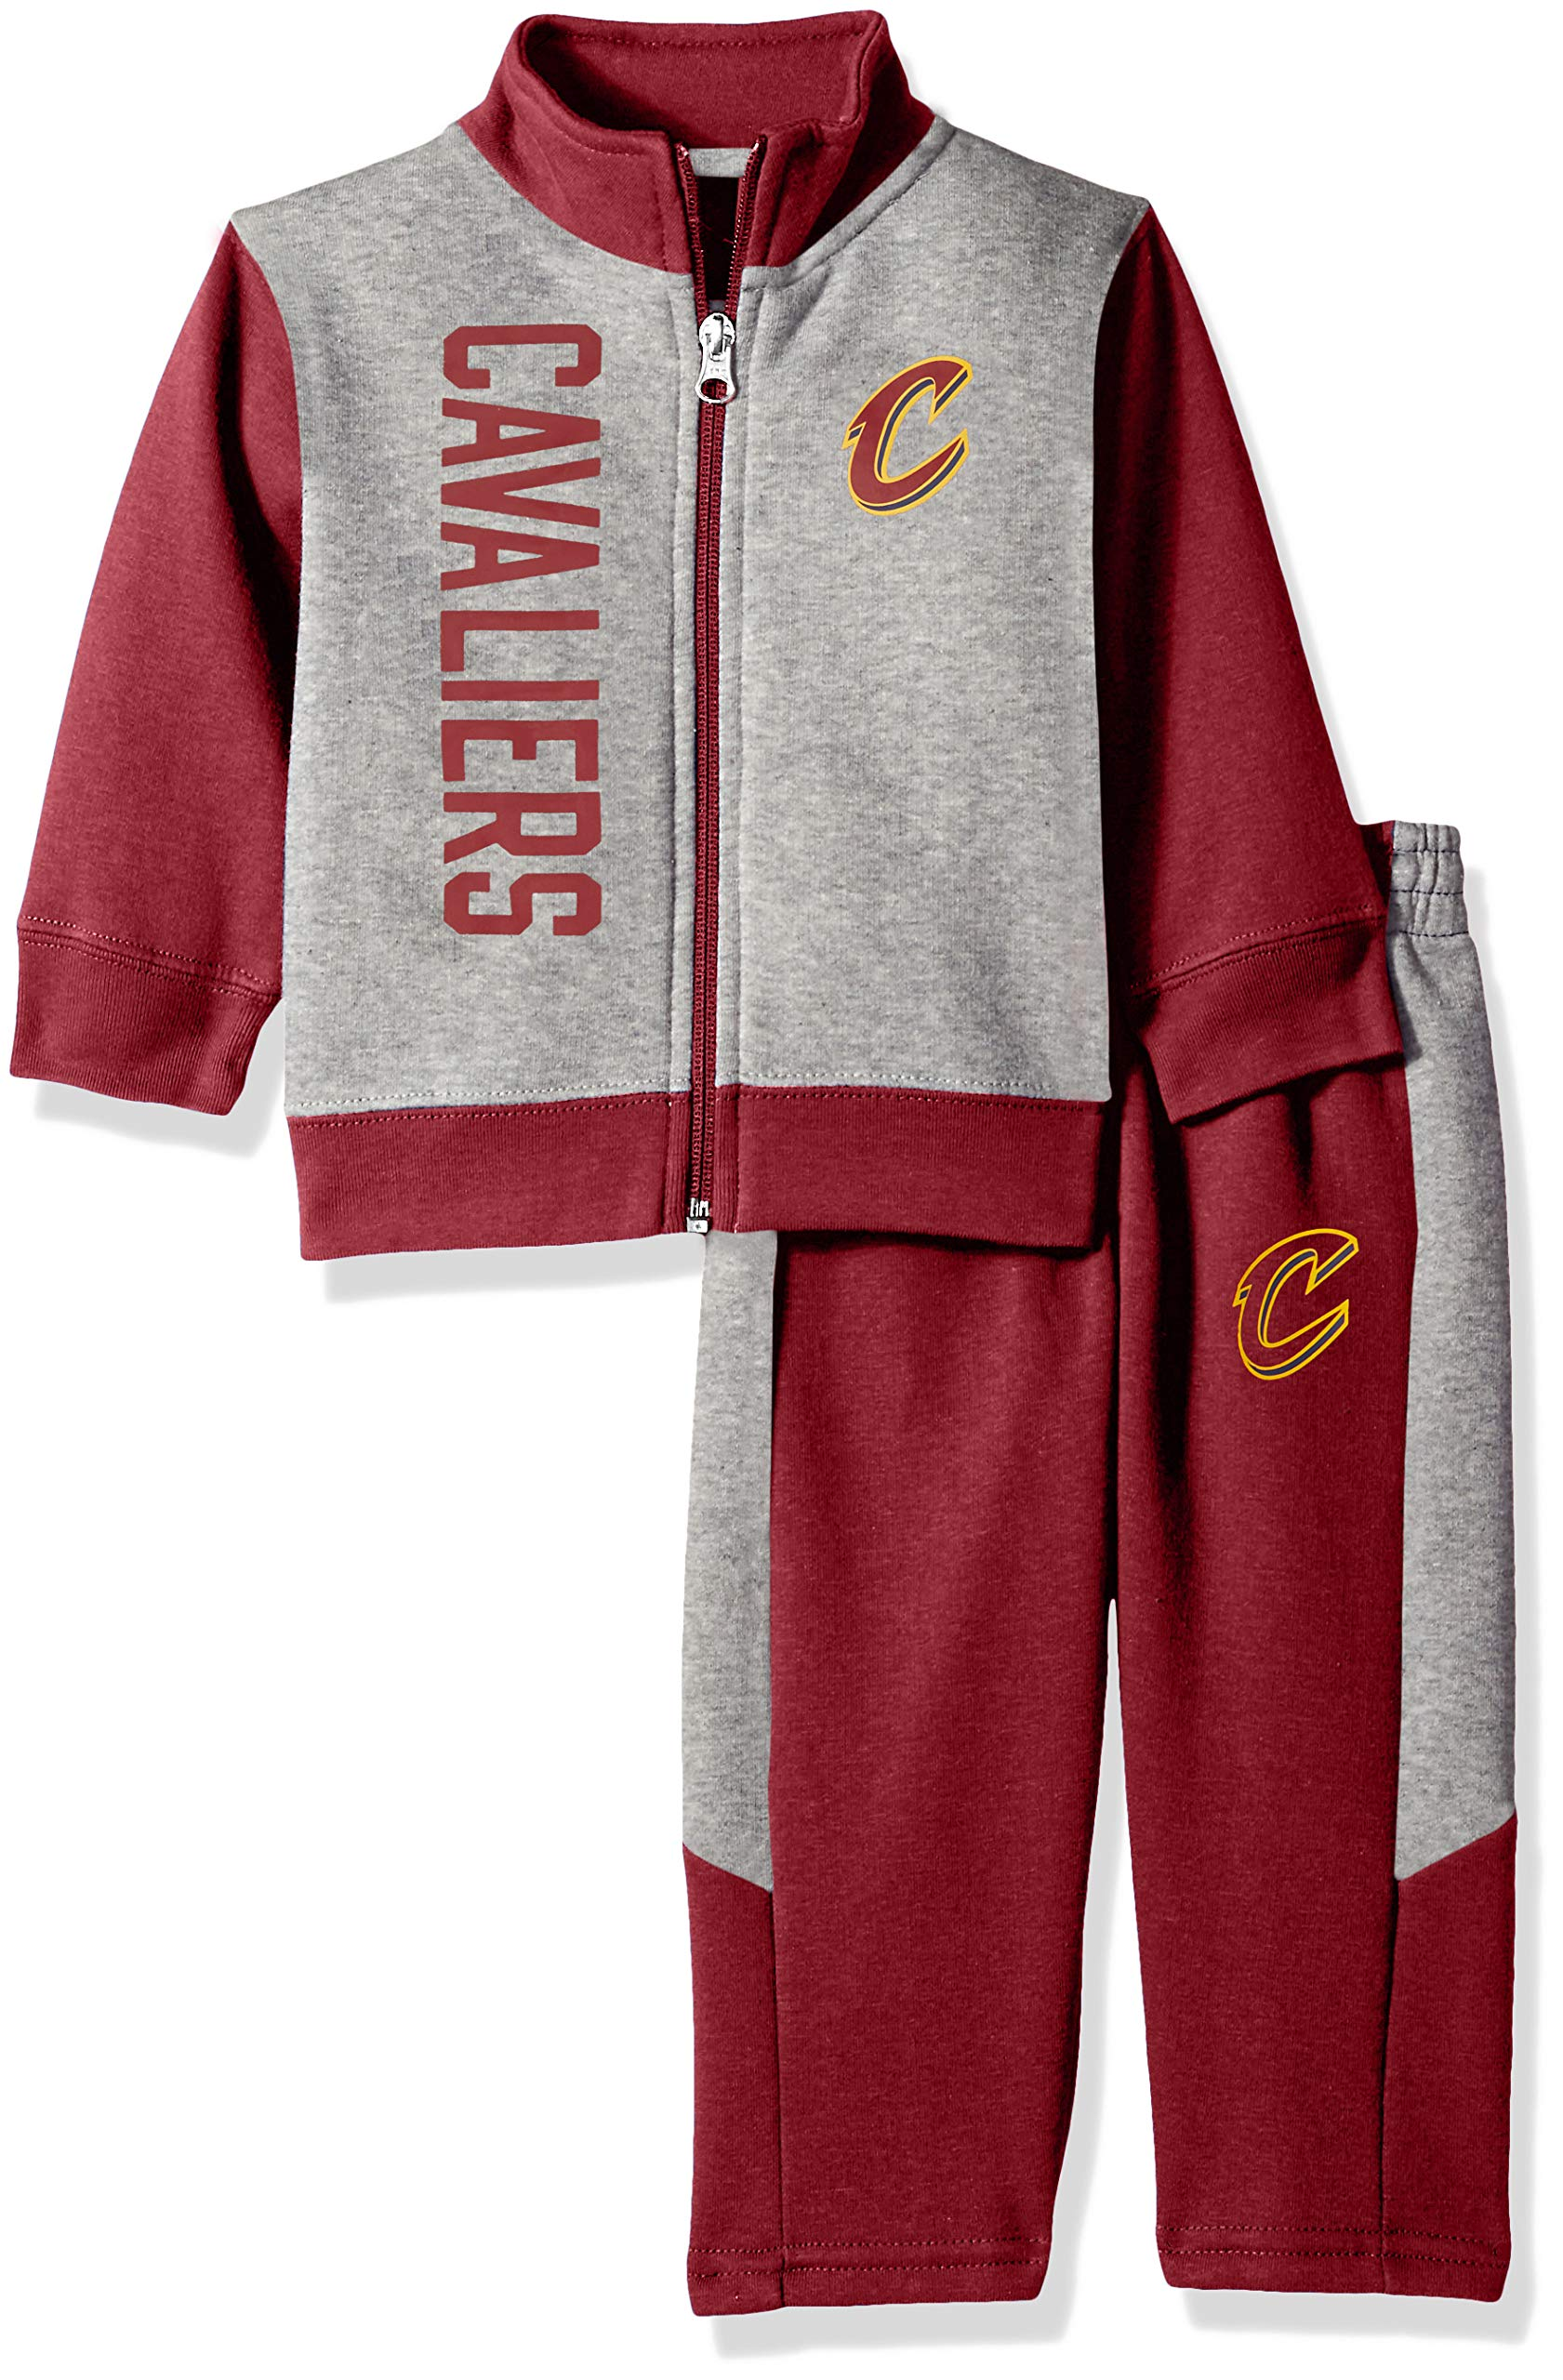 Outerstuff NBA NBA Infant Cleveland Cavaliers On The Line Jacket & Pants Fleece Set, Burgundy, 18 Months by Outerstuff